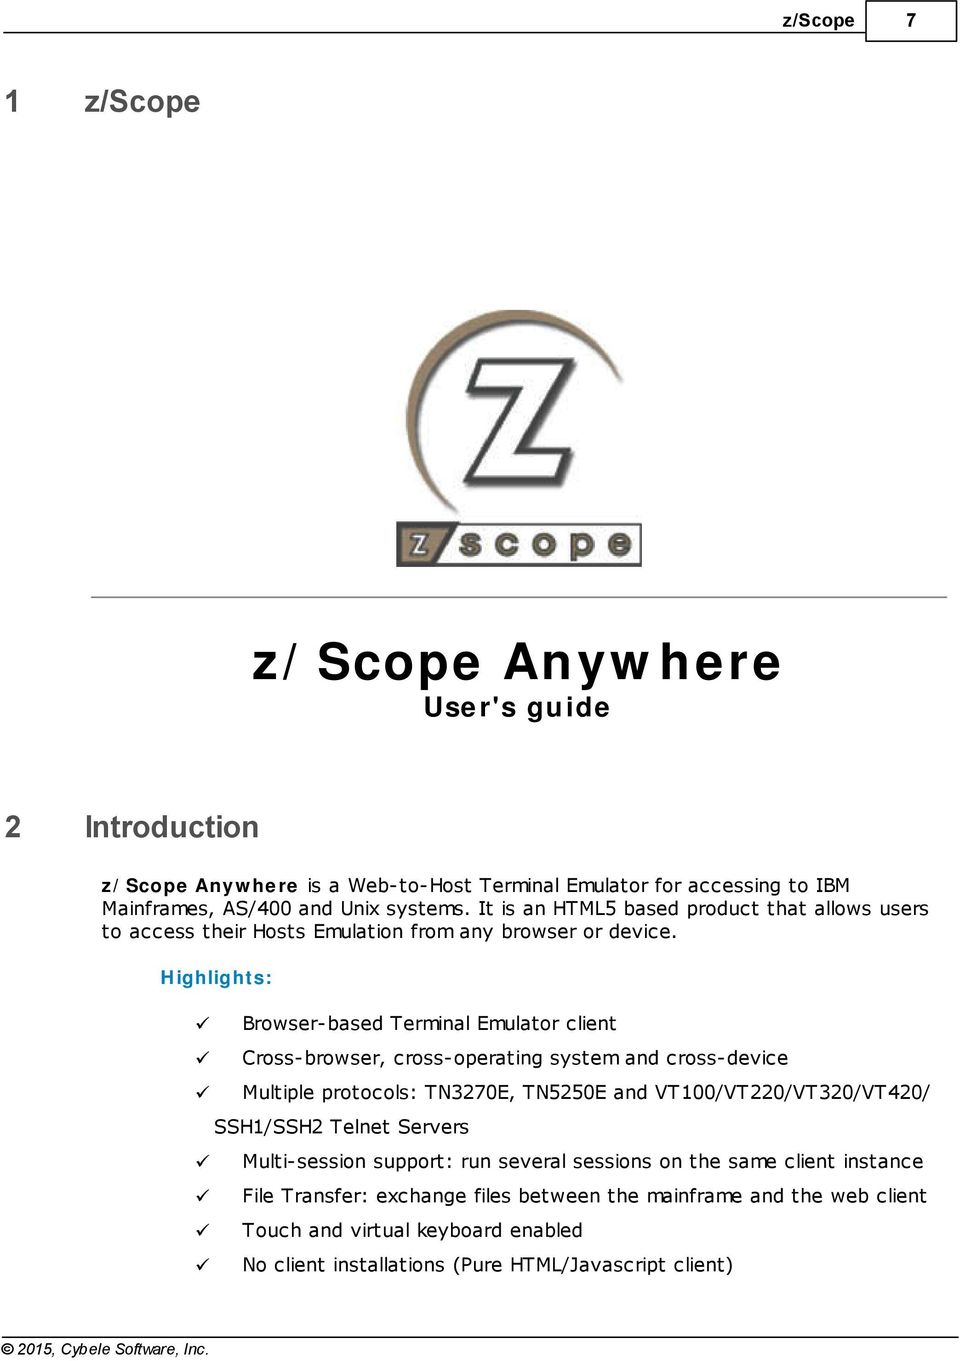 z/scope Anywhere User's guide - PDF